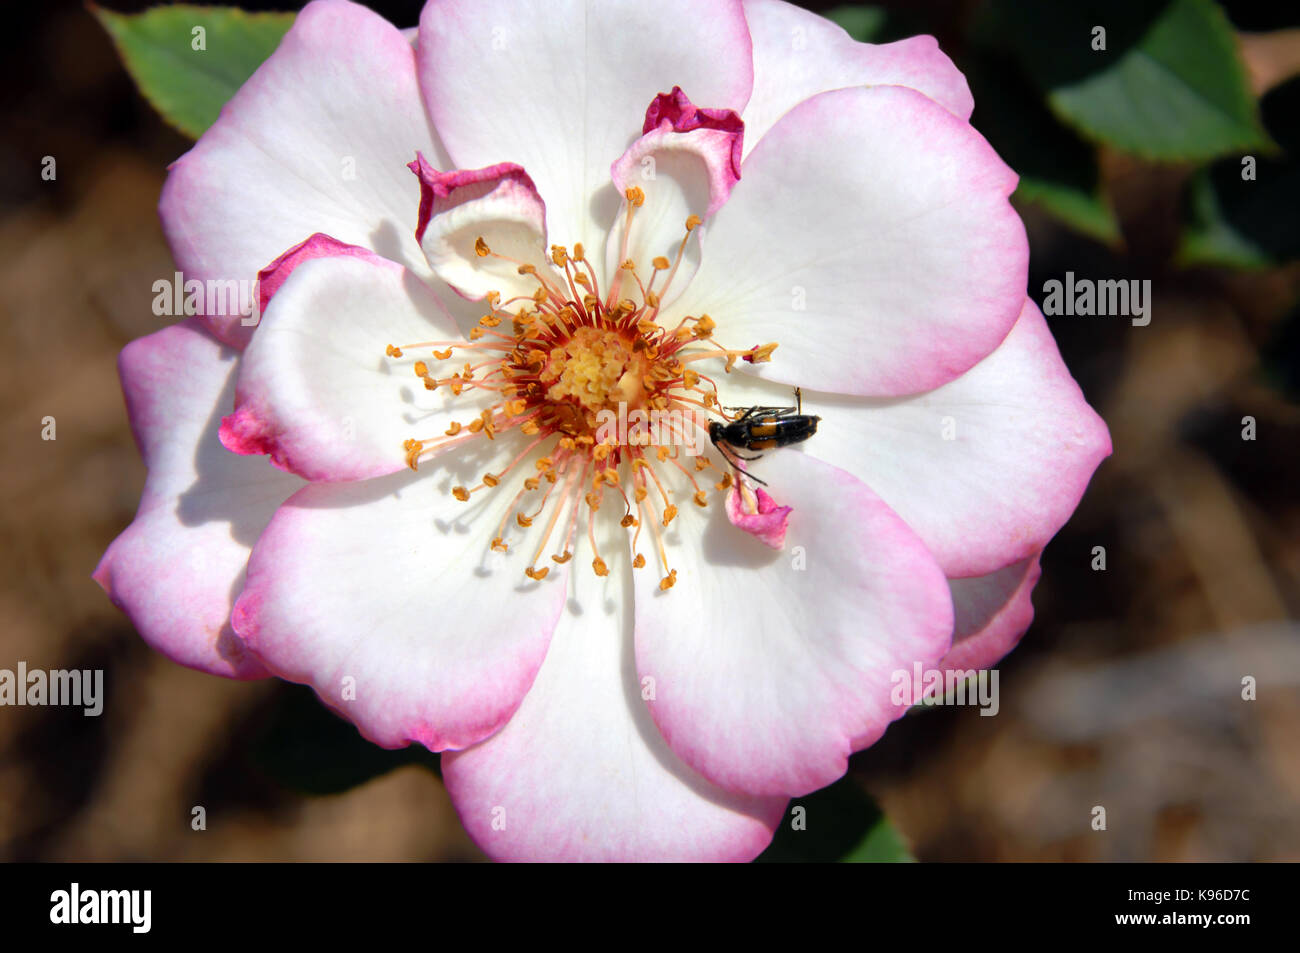 the gardens of the american rose center shreveport louisiana stock photos shreveport louisiana